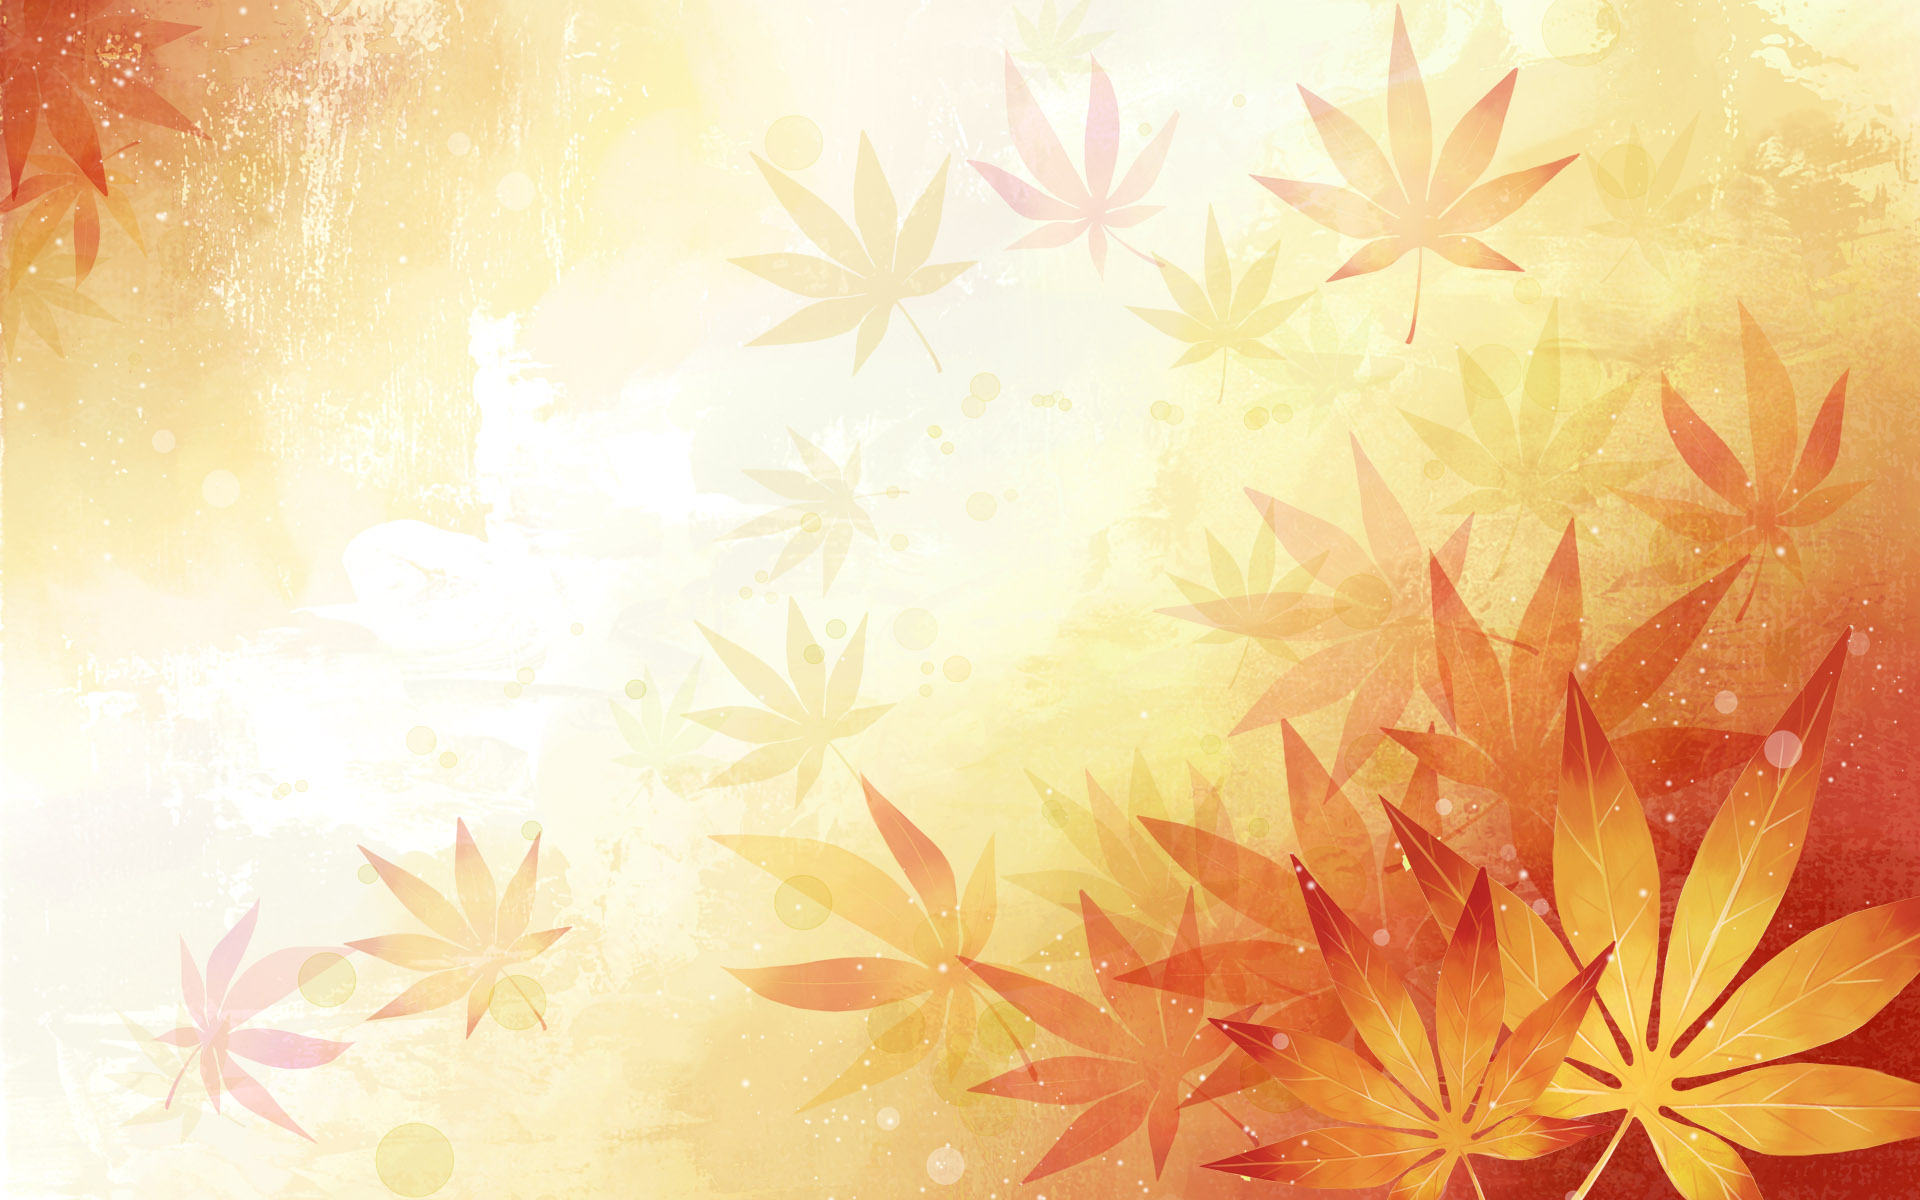 Fall Leaves Clip Art Wallpaper 12 Autumn Flower Vector Background Images Abstract